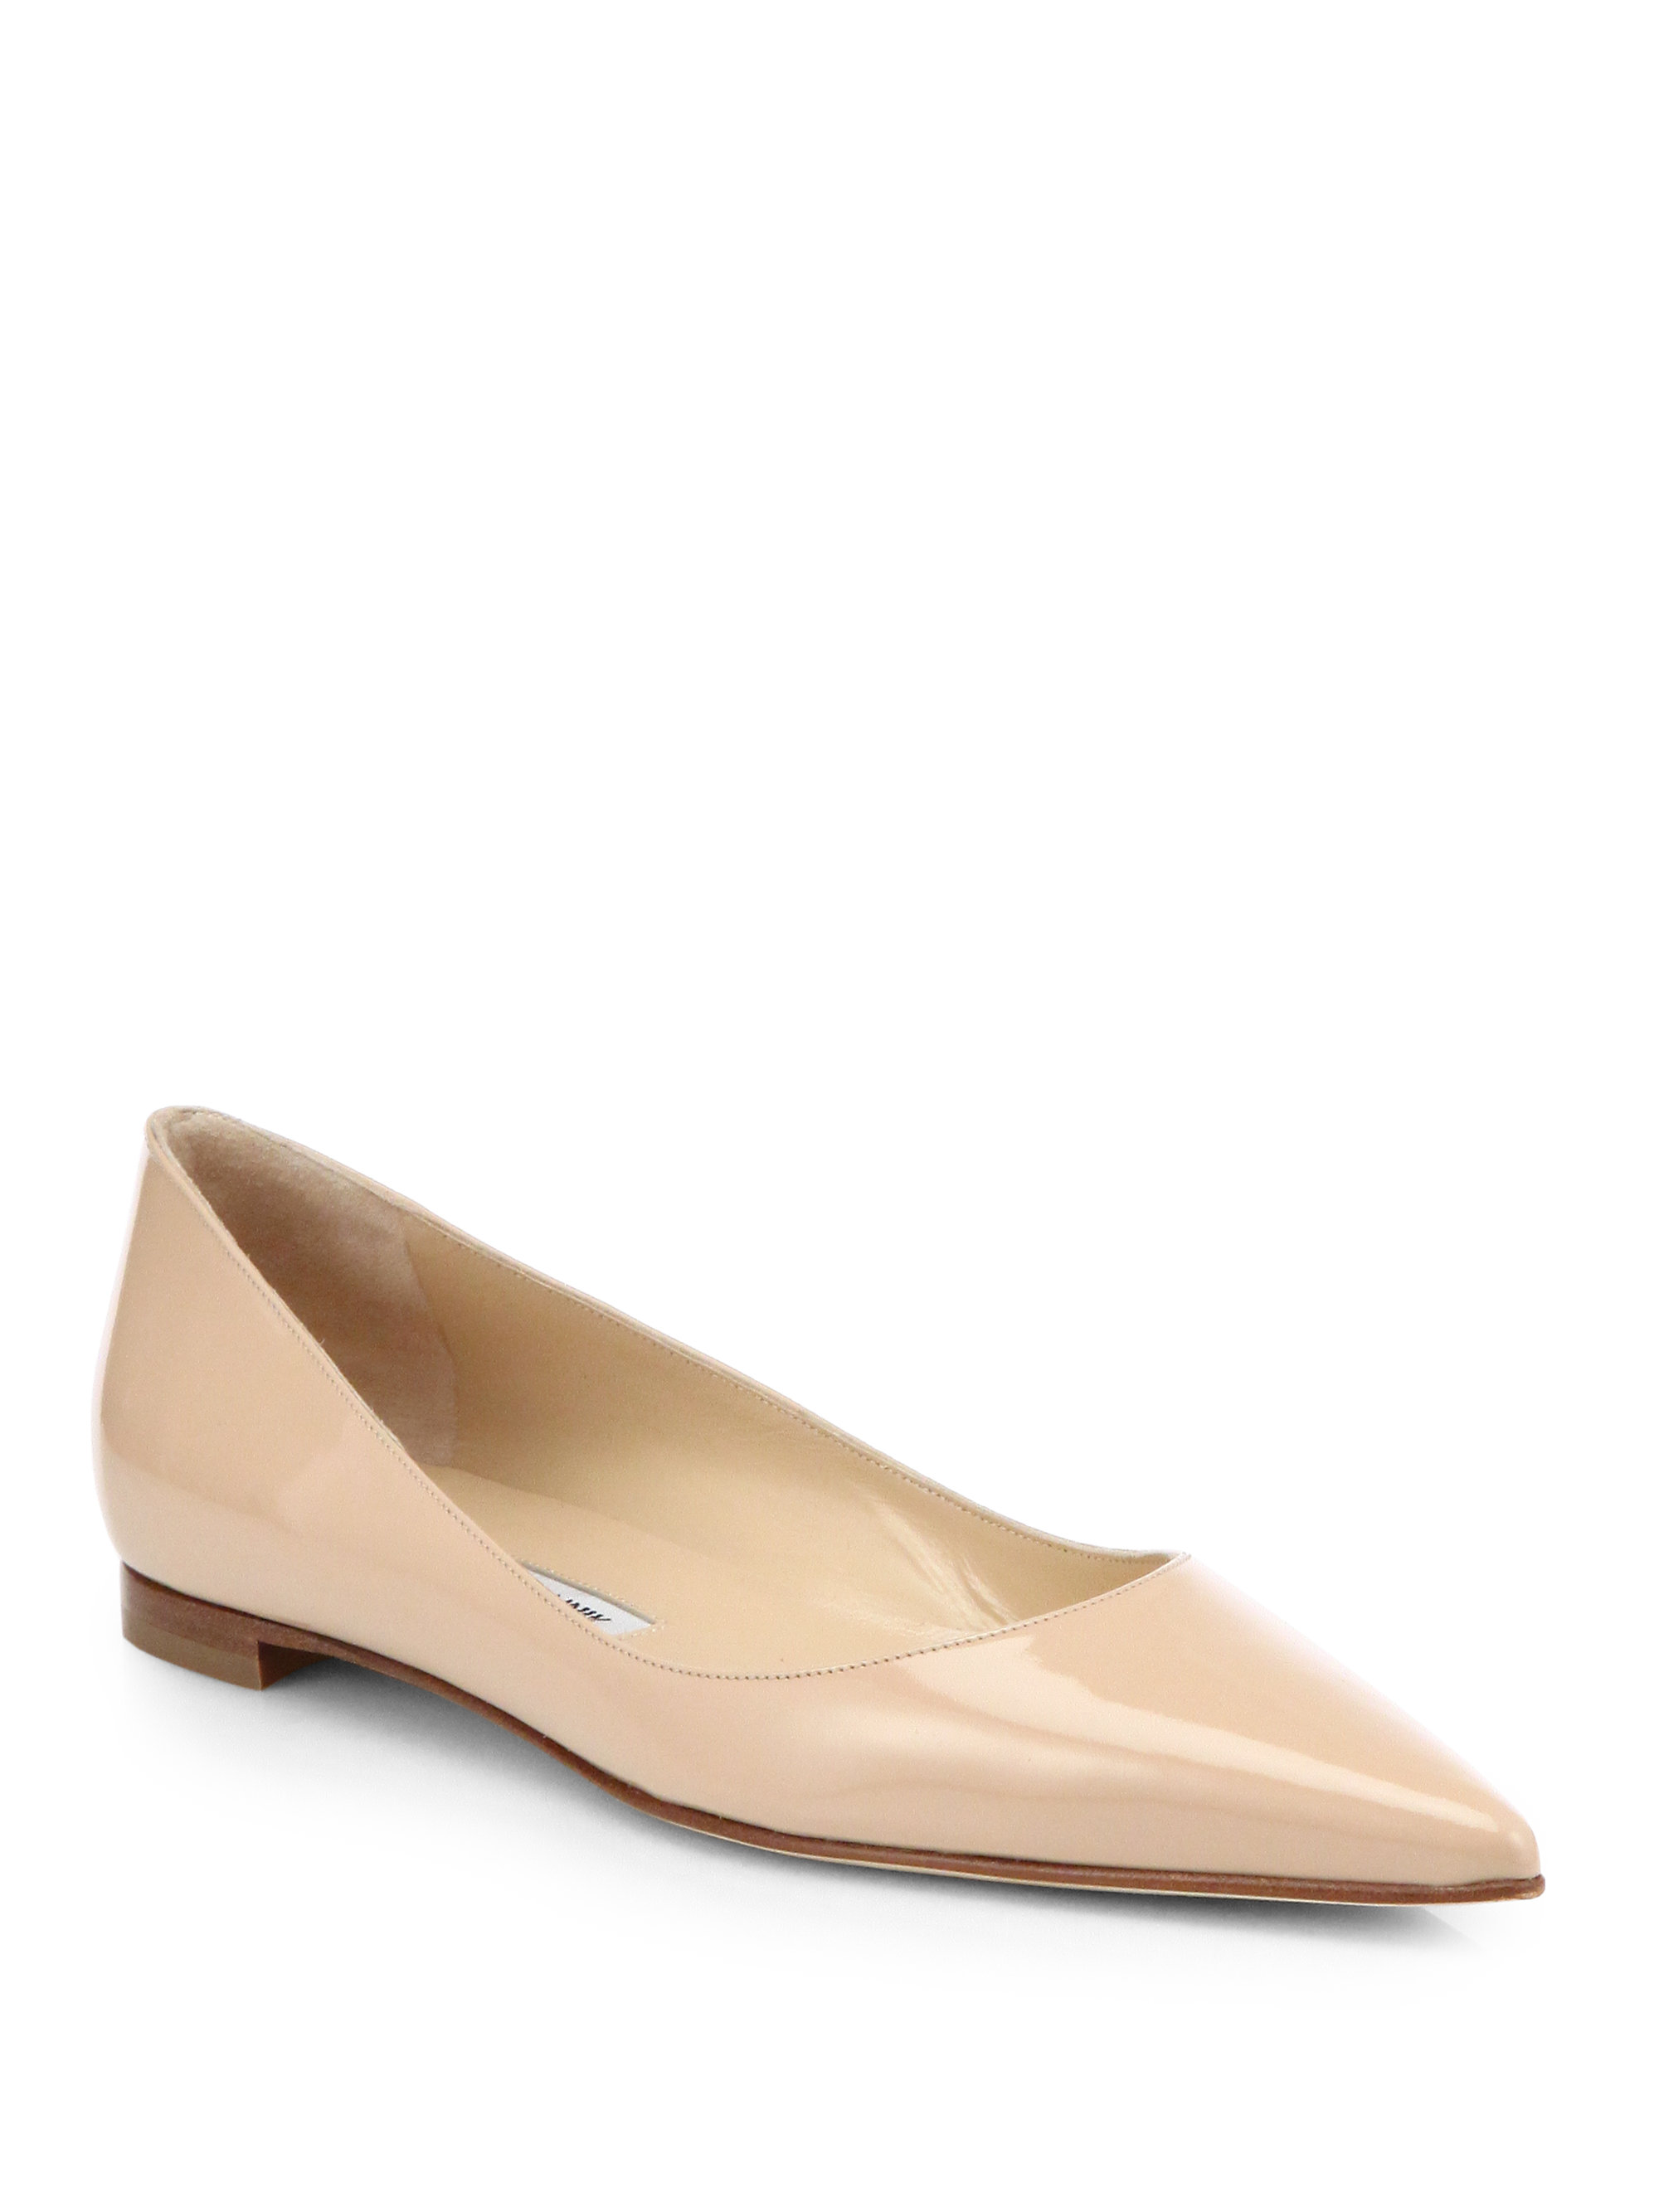 lyst manolo blahnik bb patent leather ballet flats in natural rh lyst com